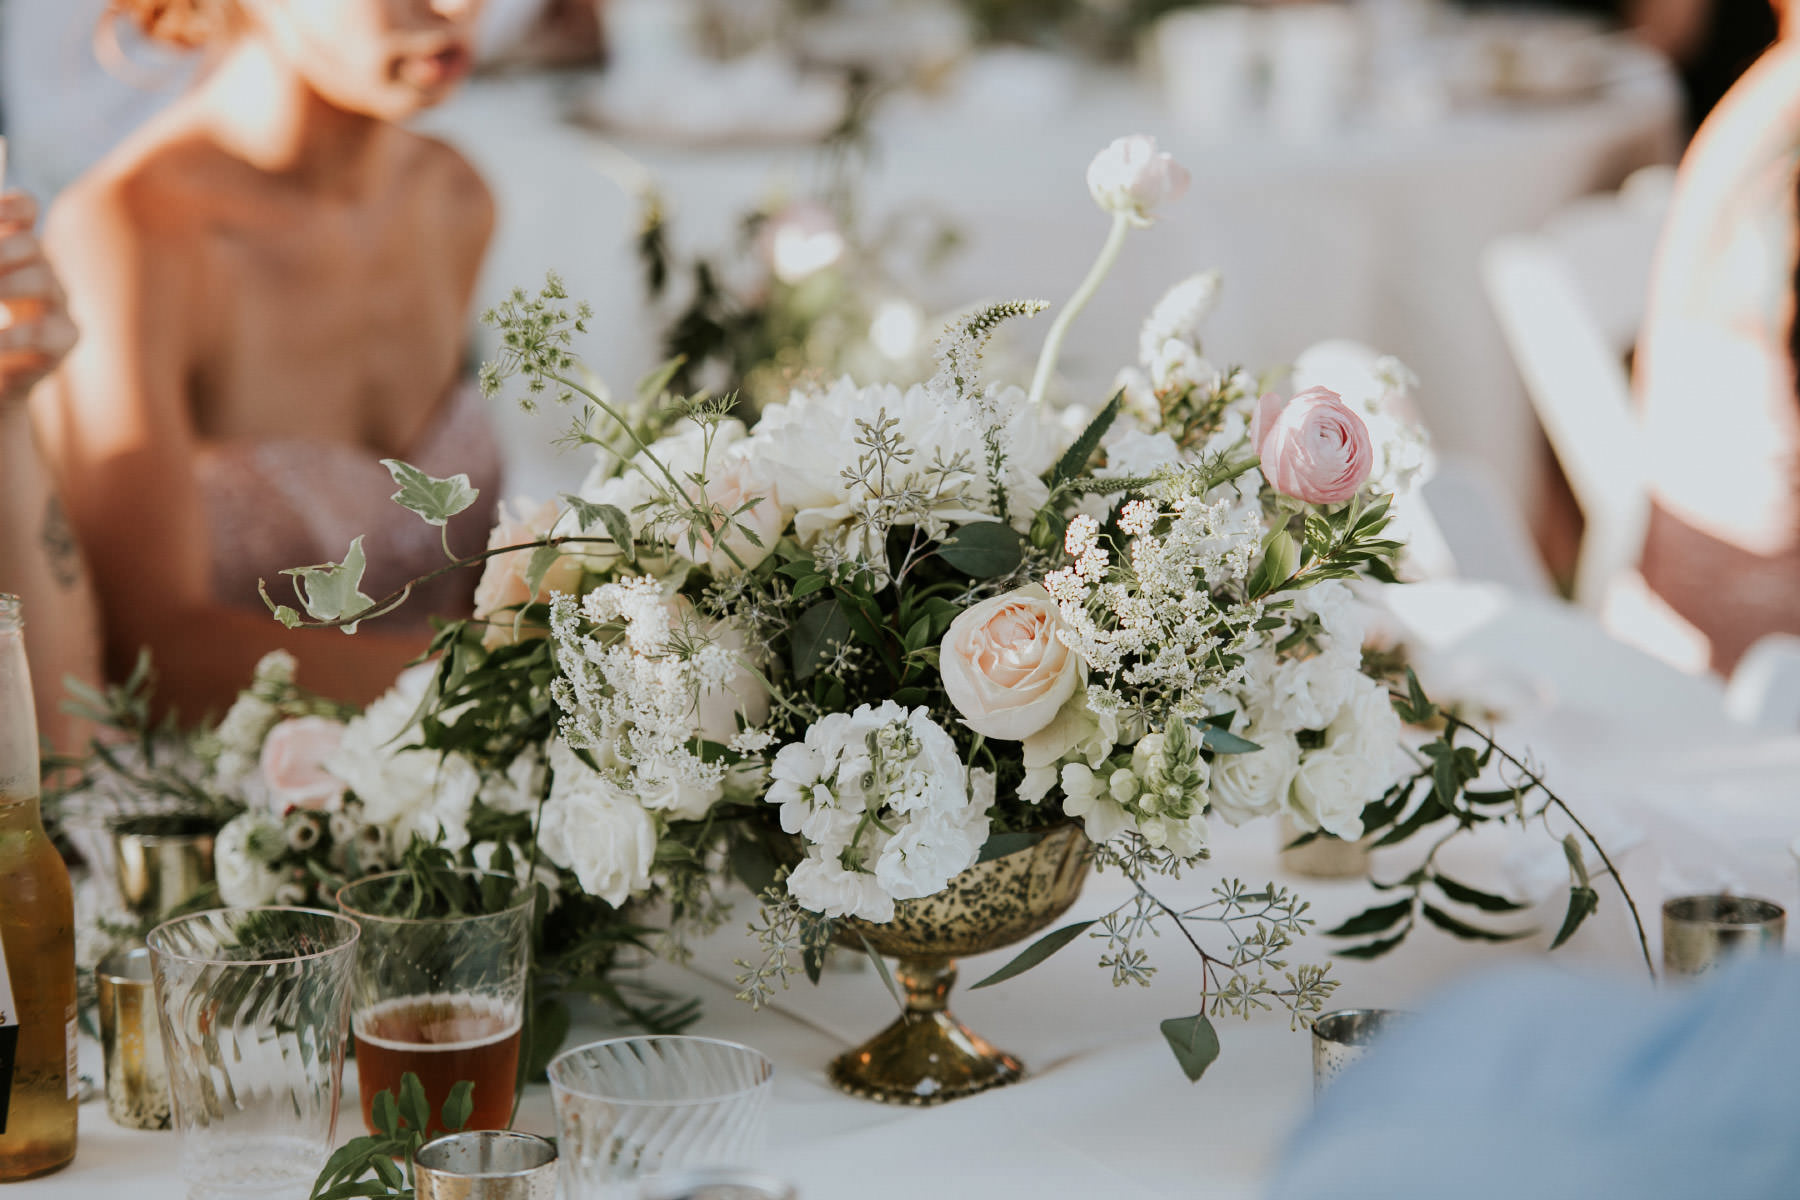 Centerpiece bouquet with white roses and greenery